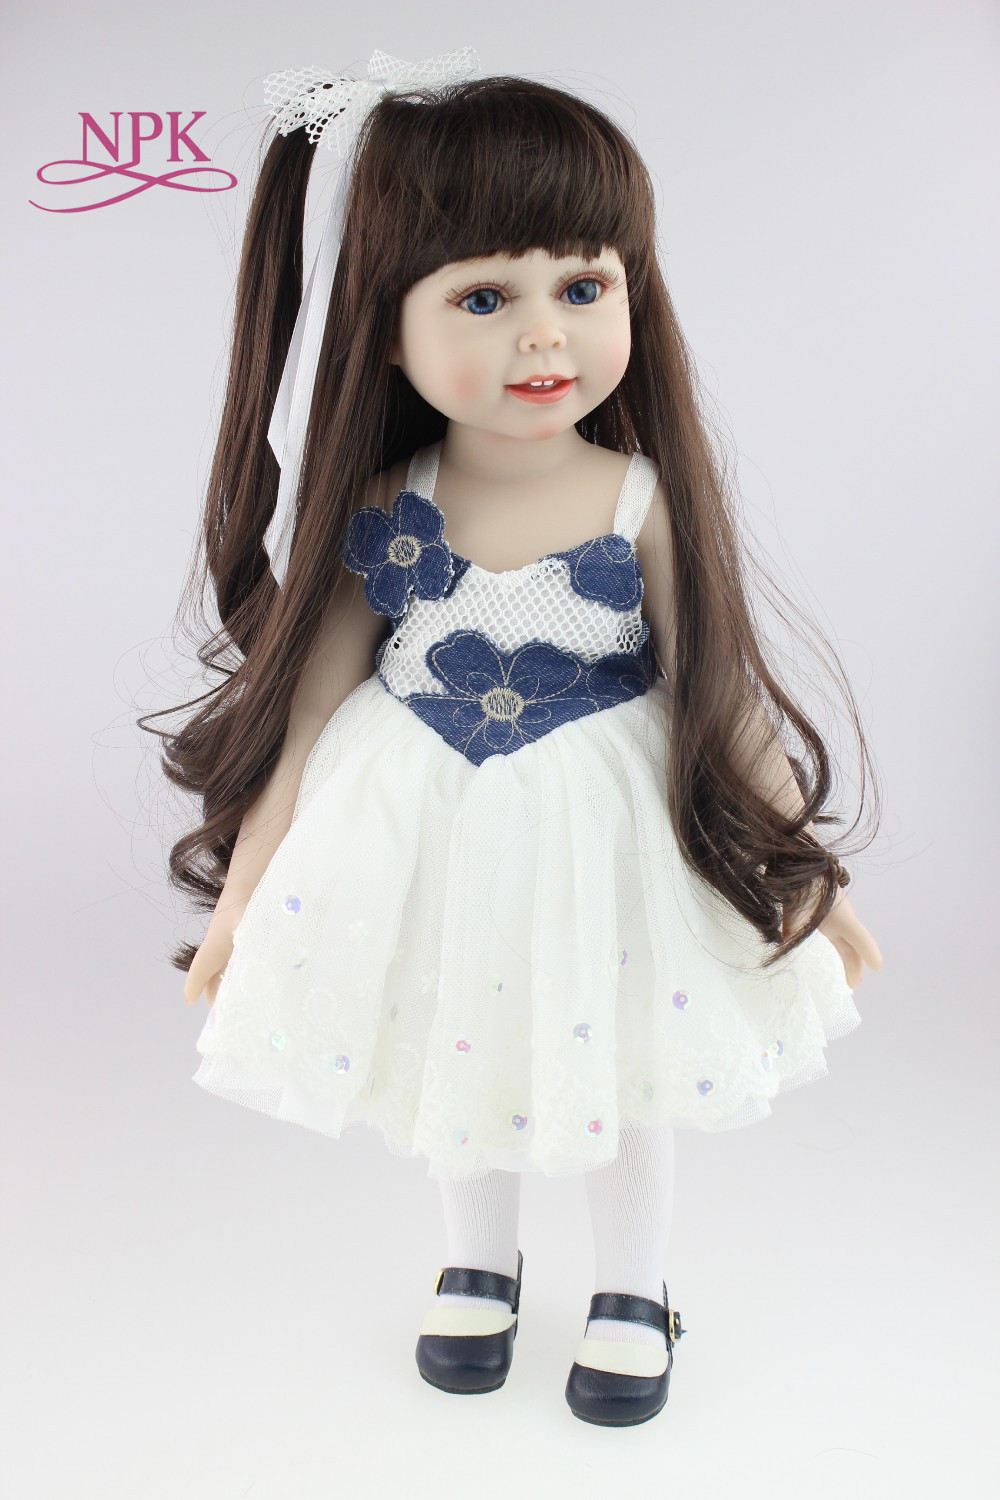 18inch Handmade Full Silicone Vinyl SD/BJD Doll Reborn With Professional Design Clothes For Dolls Must Be The Best Gift Of Kids 18inch handmade full silicone vinyl sd bjd doll reborn with professional design clothes for dolls must be the best gift of kids